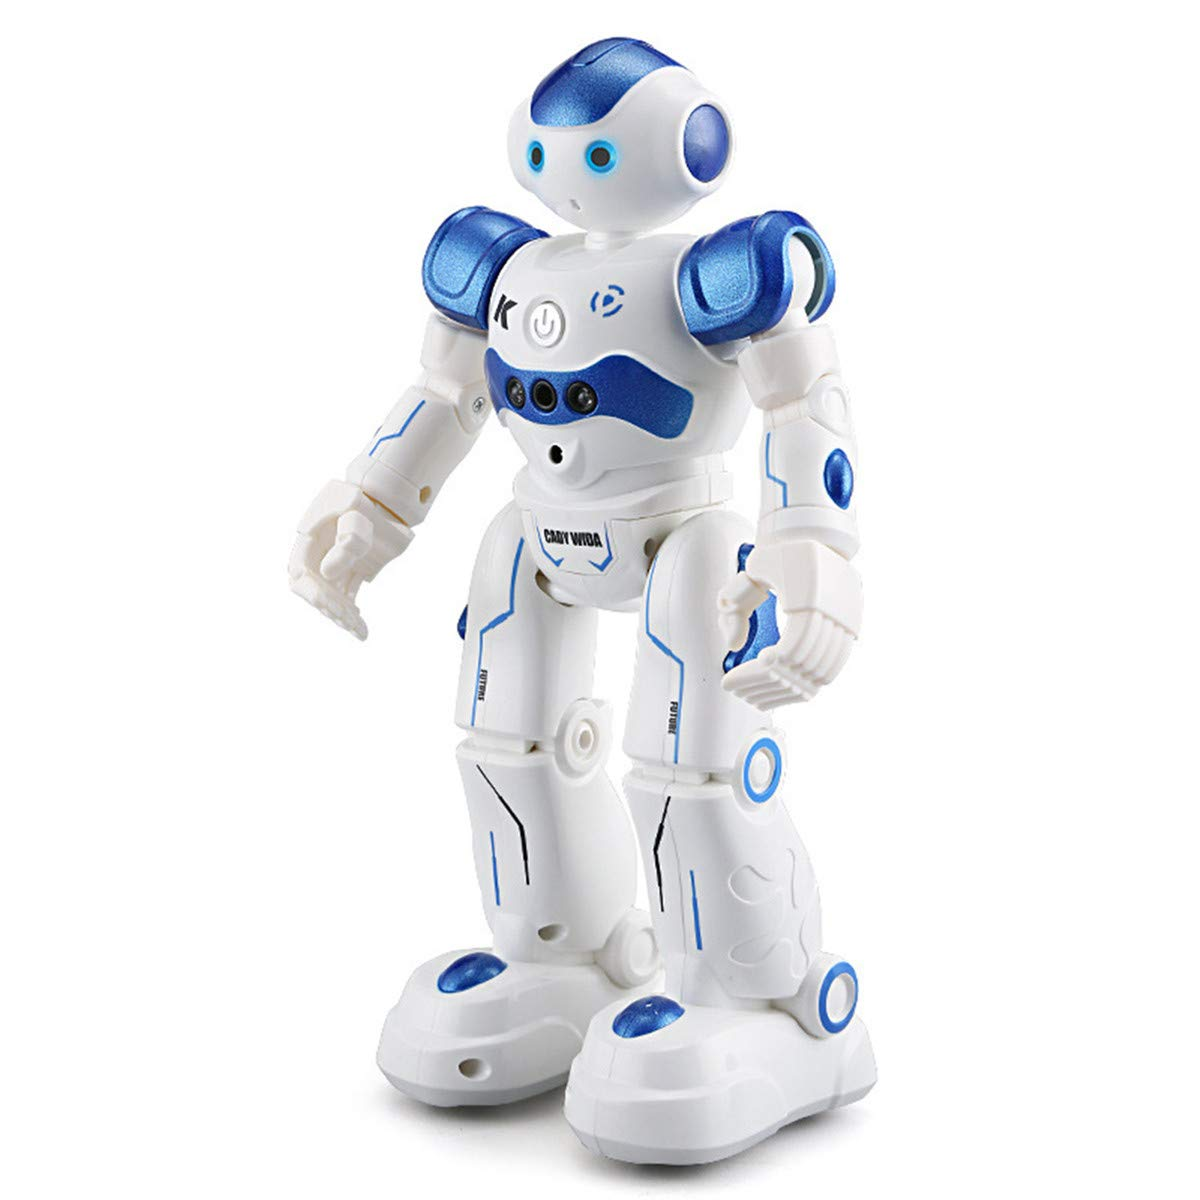 WEECOC Smart Robot Toys Gesture Control Remote Control Robot Kids Toys Birthday Can Singing Dancing Speaking Two Walking Models (White) by WEECOC (Image #7)